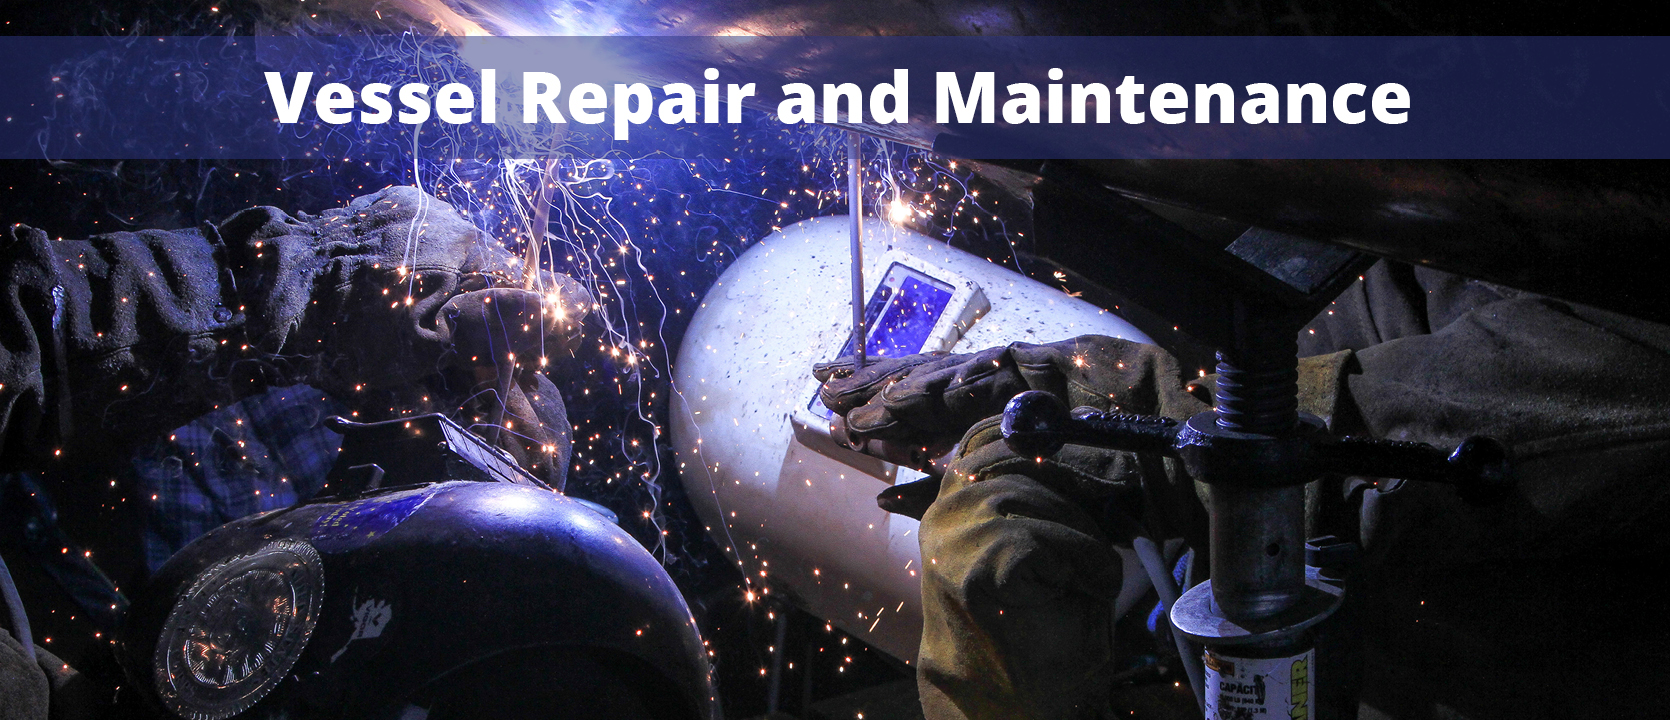 Vessel Repair and Maintenance